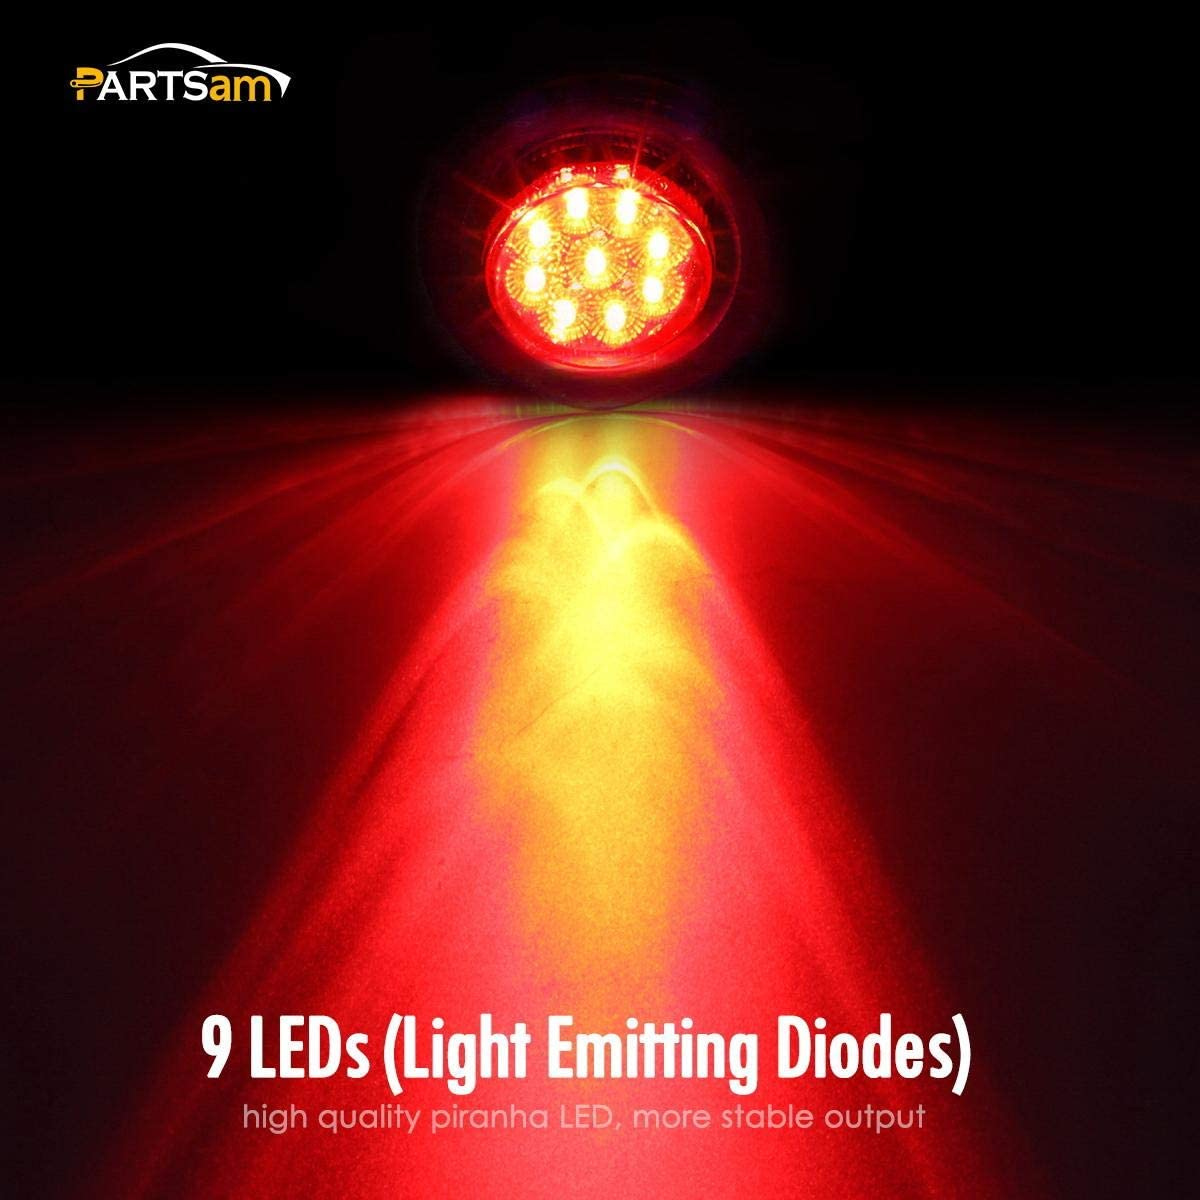 Partsam 20Pcs 2 Inch Round Trailer Red Led and Side Marker Lights 9 Diodes Smoked w Reflectors Waterproof 12V Truck RV 2 Round Red Led Marker Lights Panel Kits Grommets Mount and Pigtails